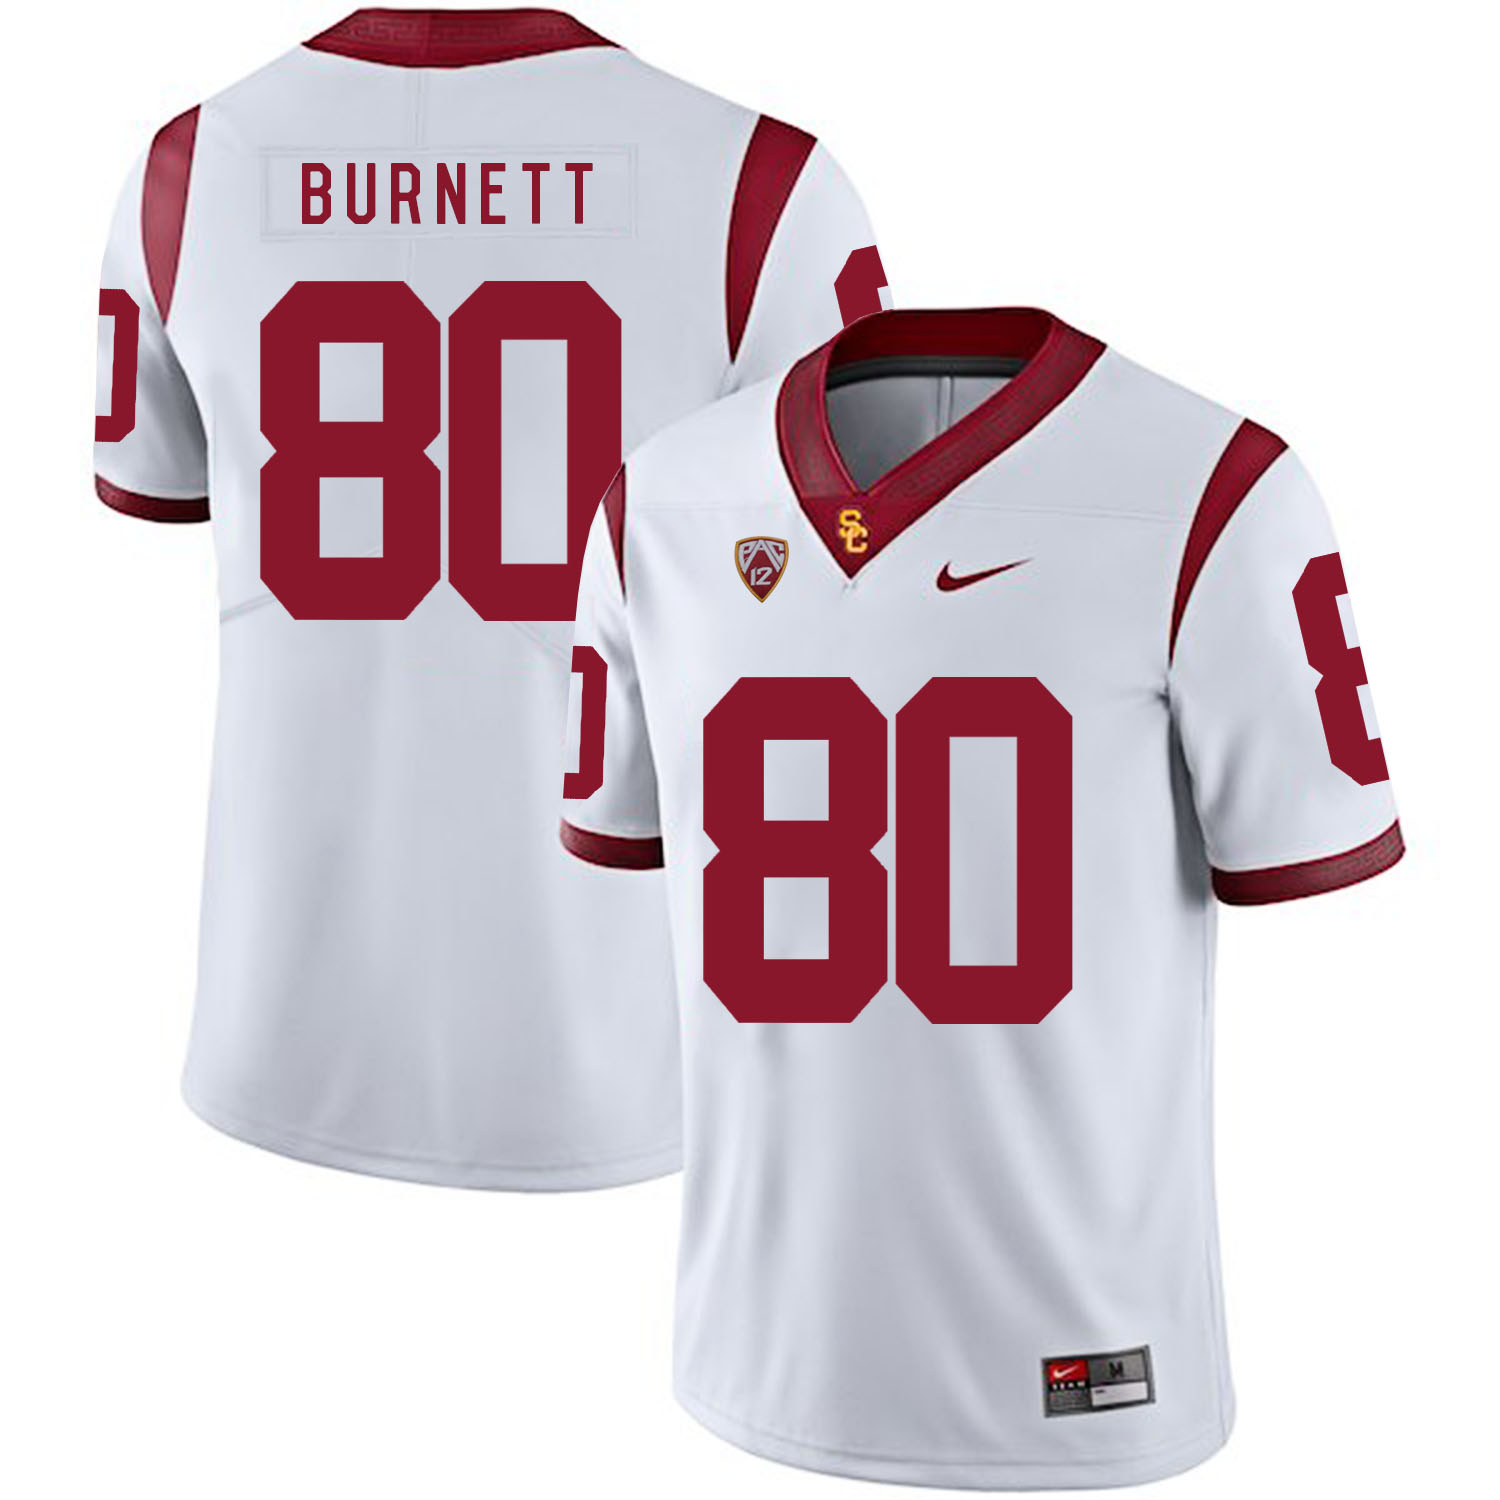 USC Trojans 80 Deontay Burnett White College Football Jersey